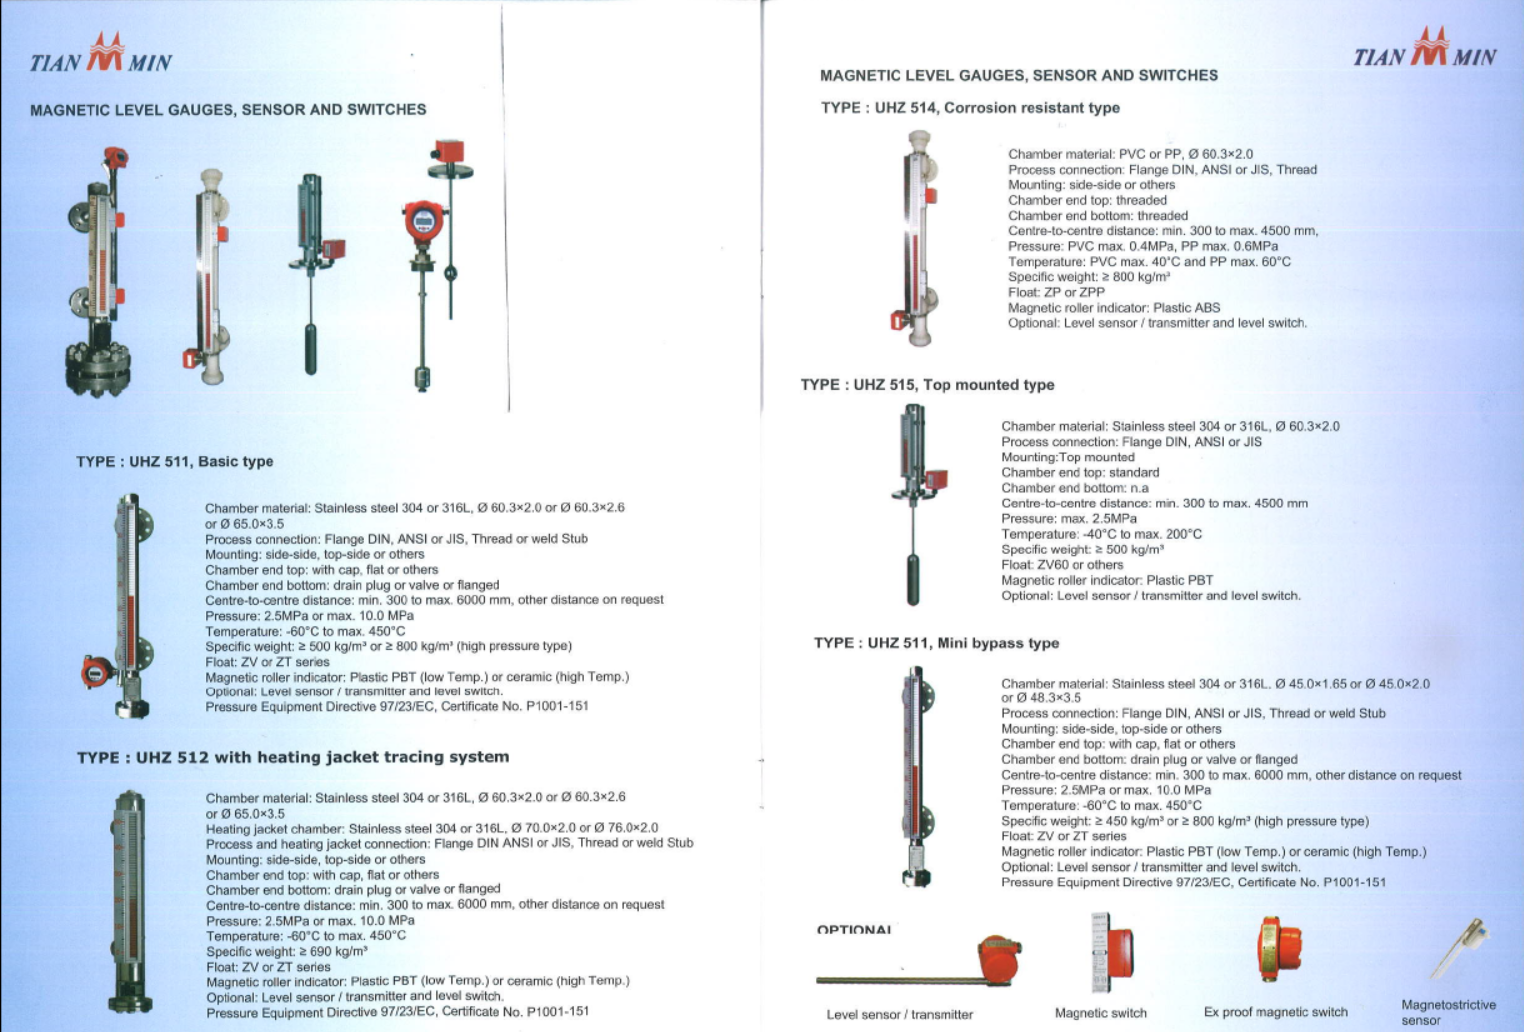 tianmin-magnetic-level-gauges